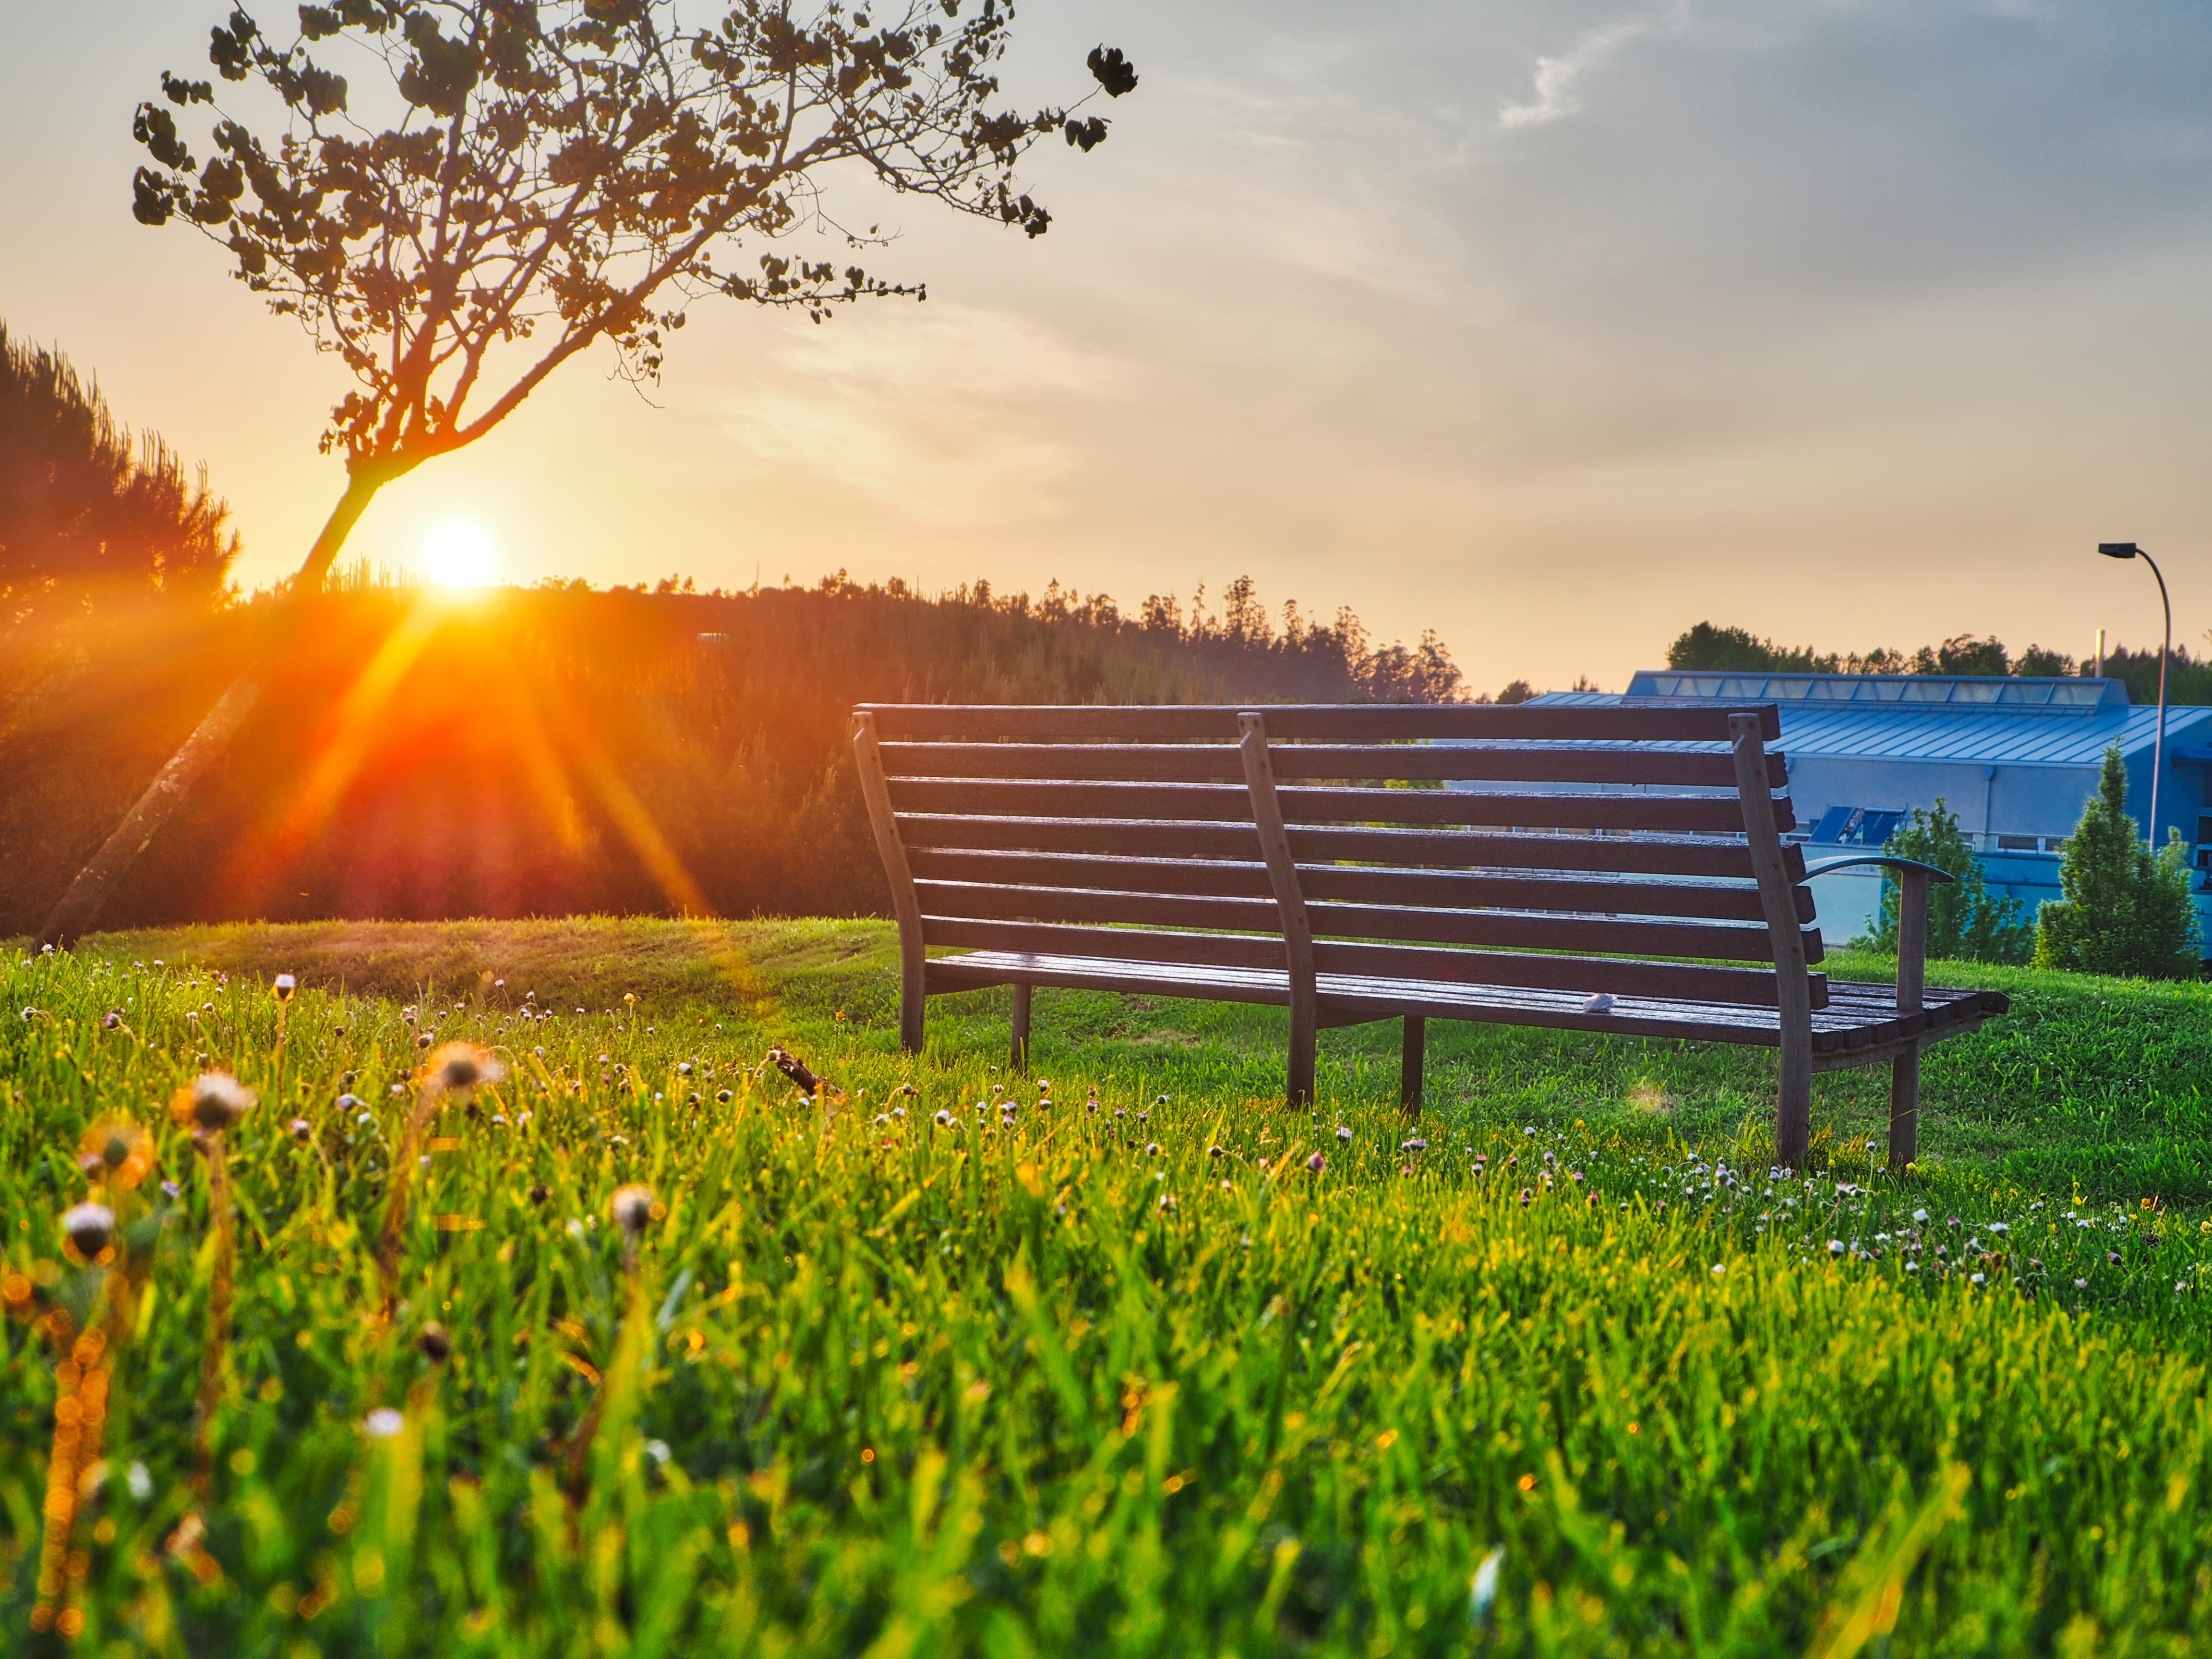 Fall Sunrise Wallpaper Brown Bench On Green Grass 183 Free Stock Photo